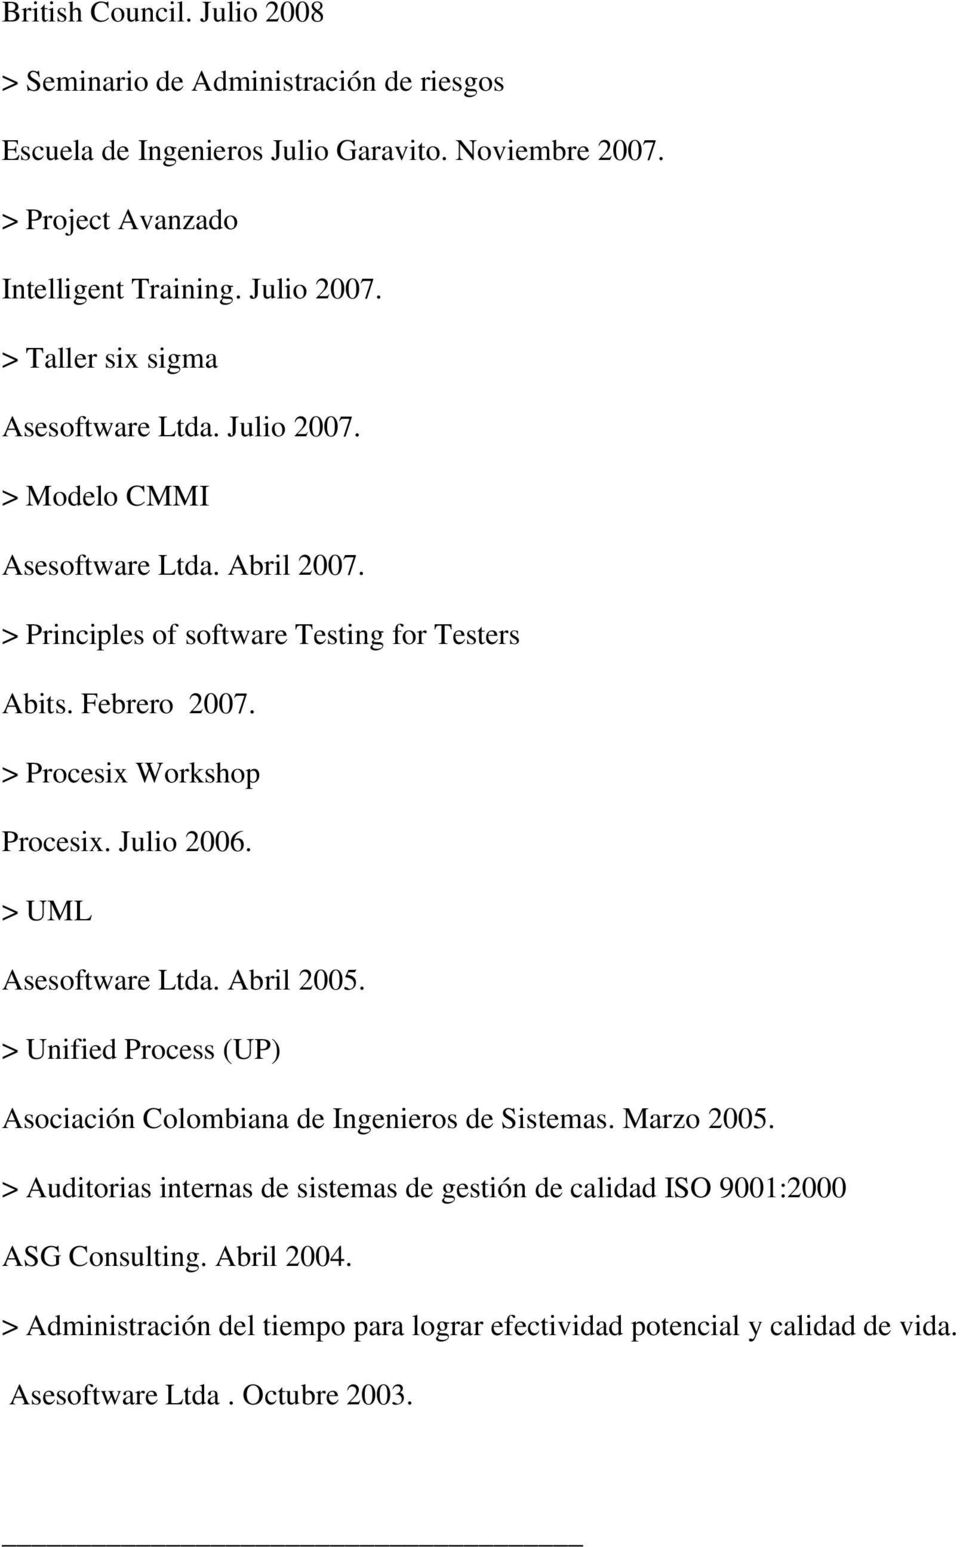 > Procesix Workshop Procesix. Julio 2006. > UML Asesoftware Ltda. Abril 2005. > Unified Process (UP) Asociación Colombiana de Ingenieros de Sistemas. Marzo 2005.